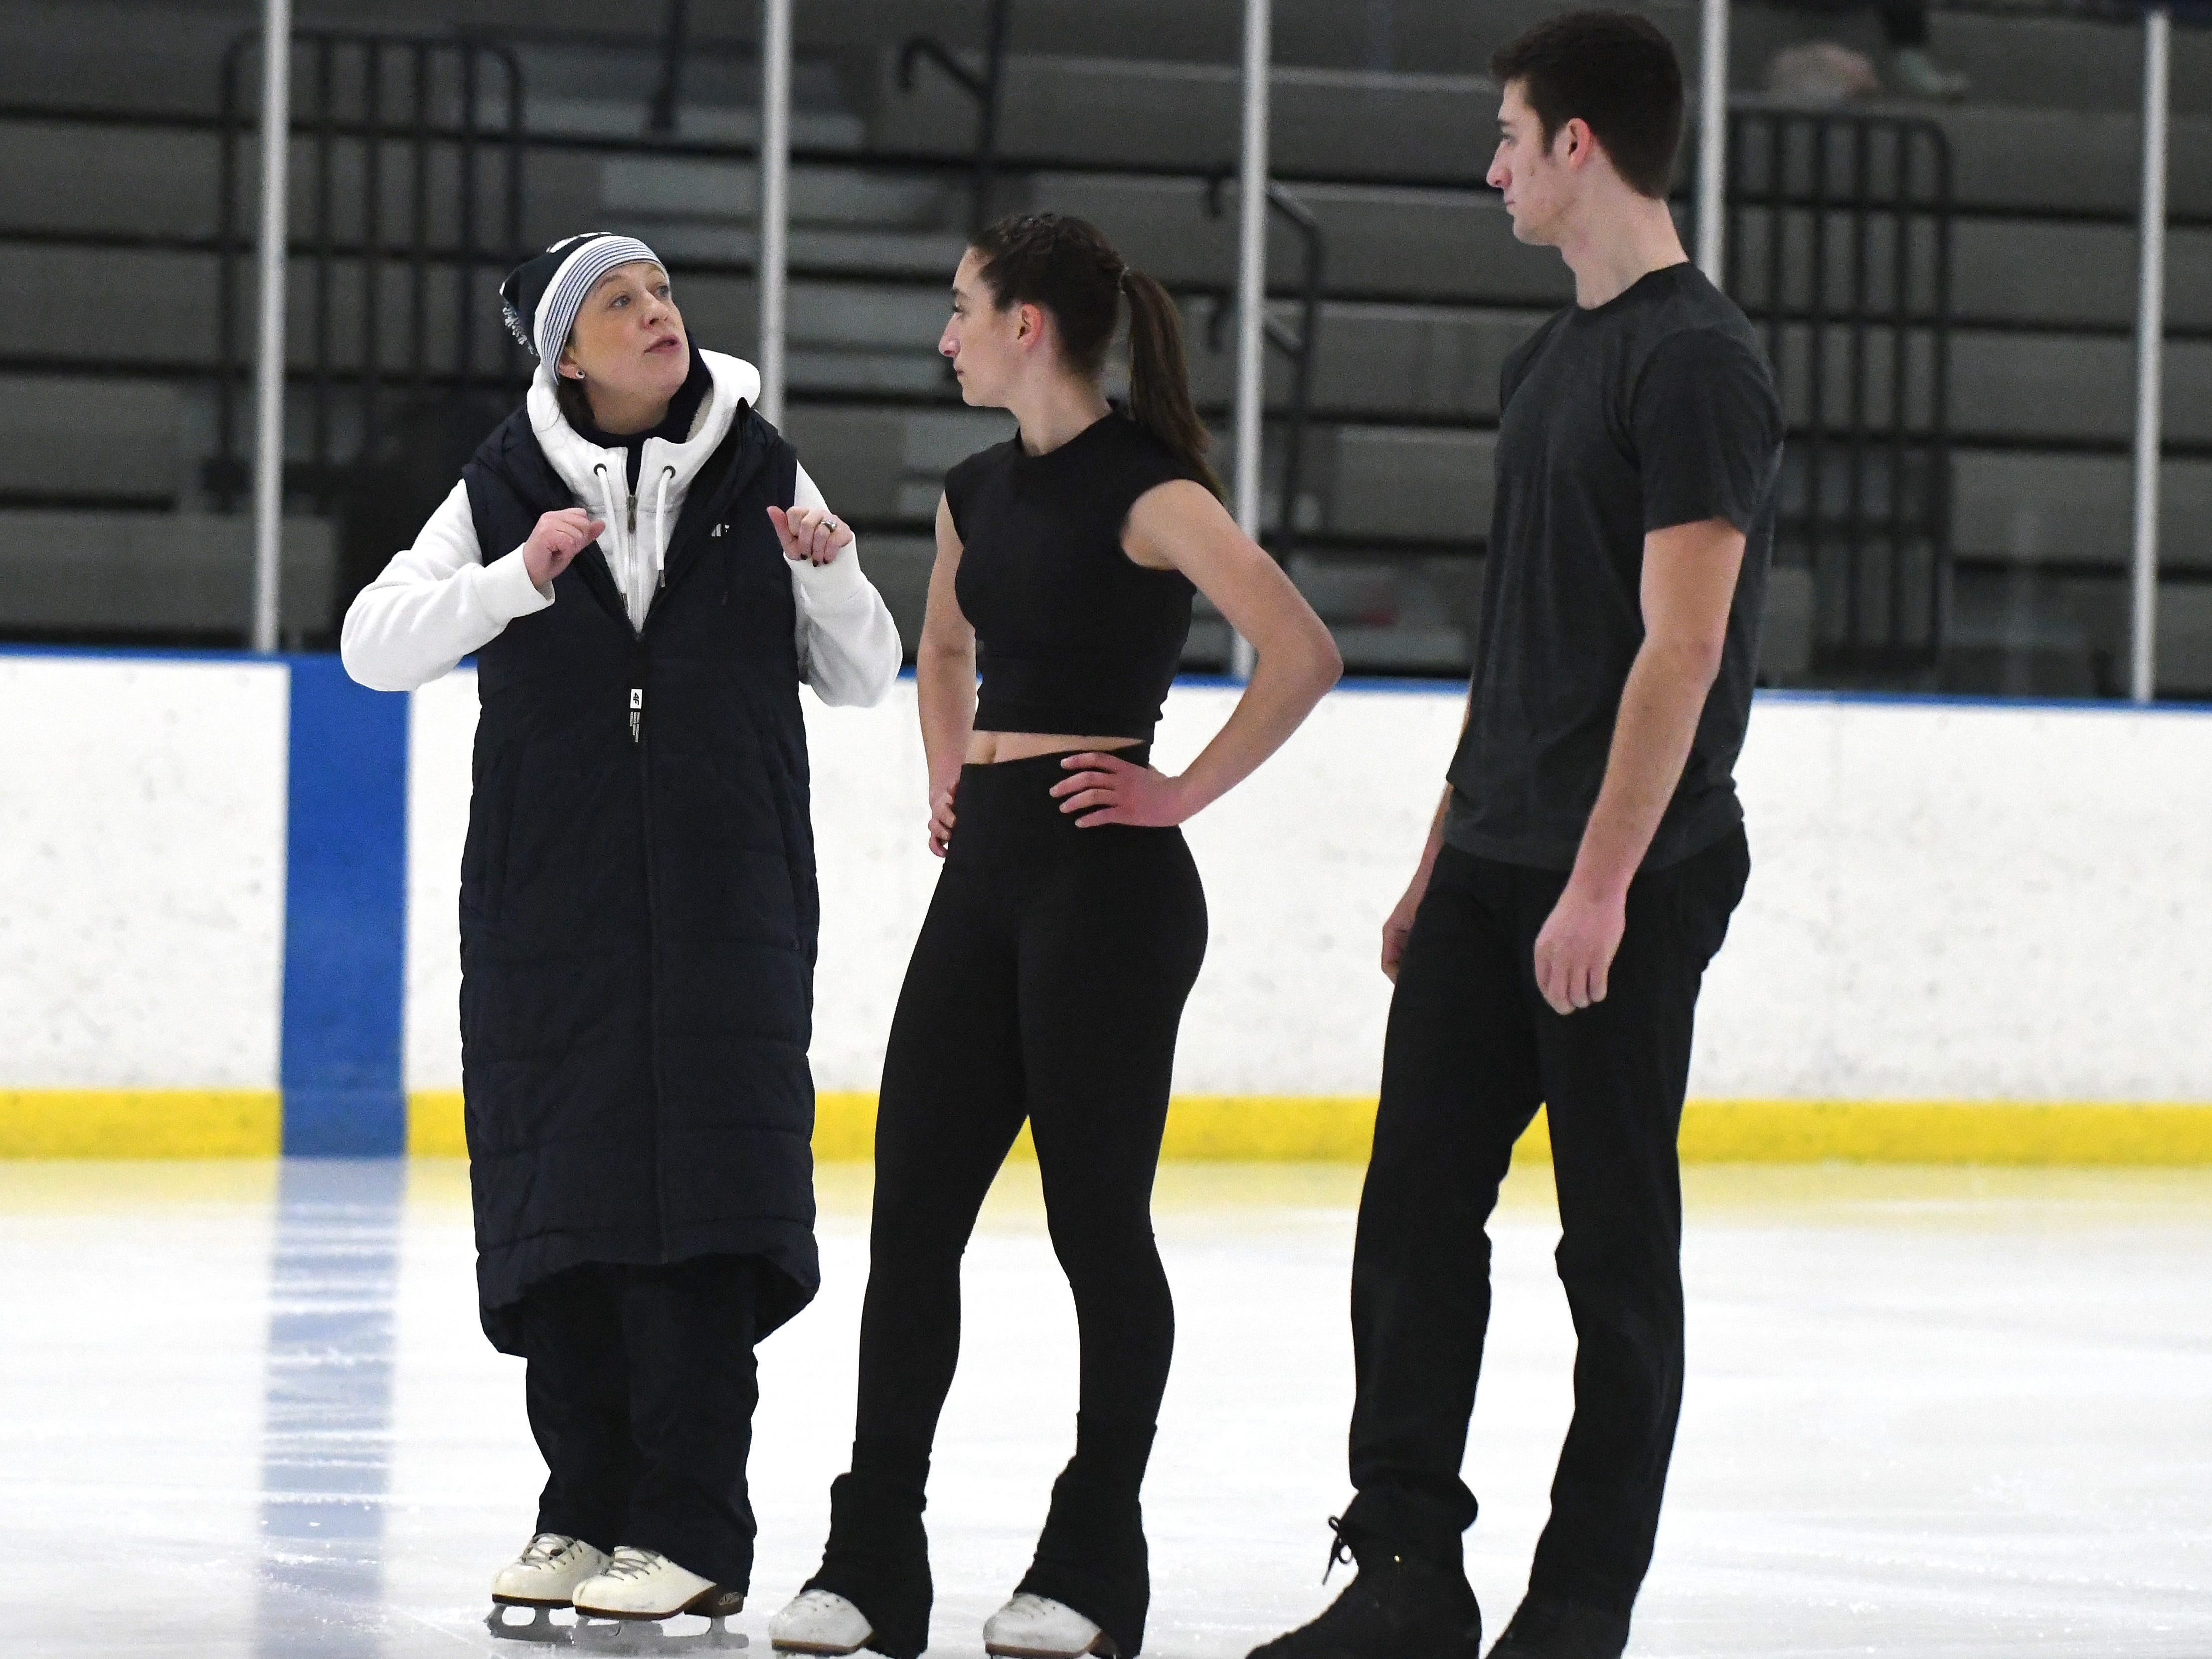 Coach Zuzanna Parchem works with Isabelle Goldstein and Keyton Bearinger during practice.